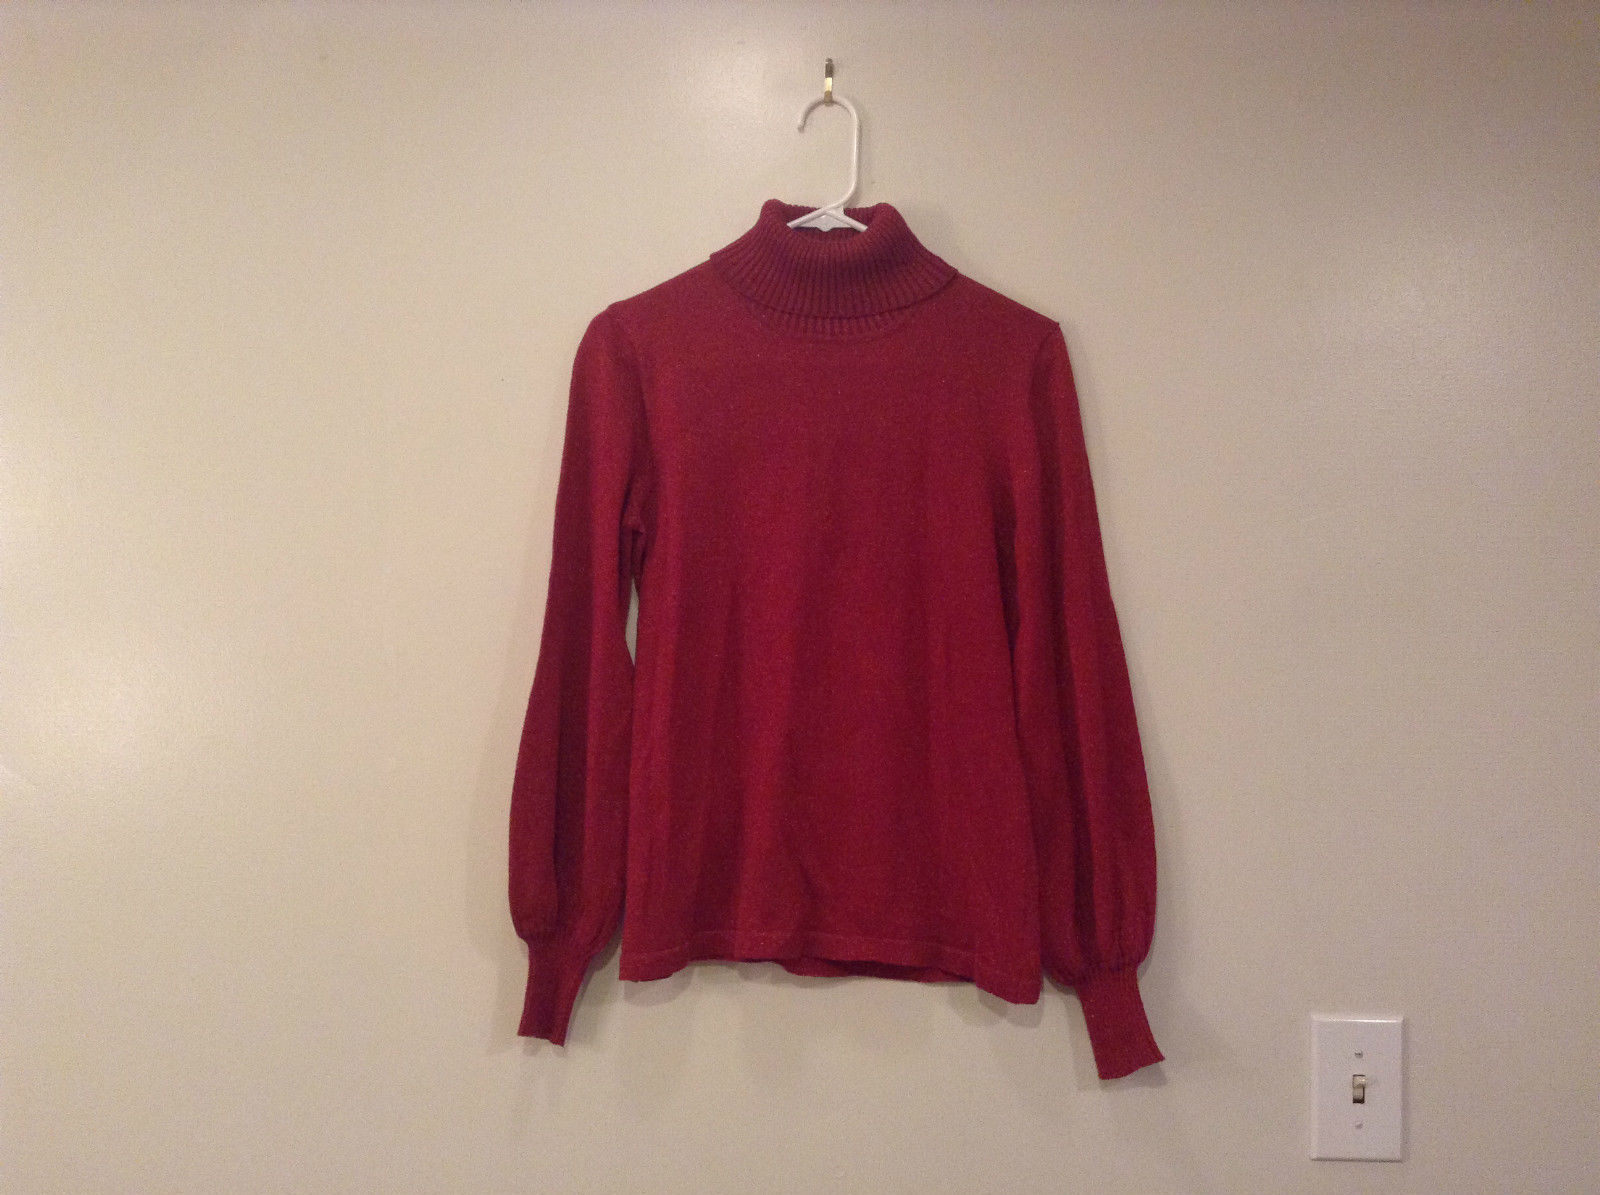 Spiegel Red Turtleneck Top Size Medium Red Metallic Yarn Excellent Condition